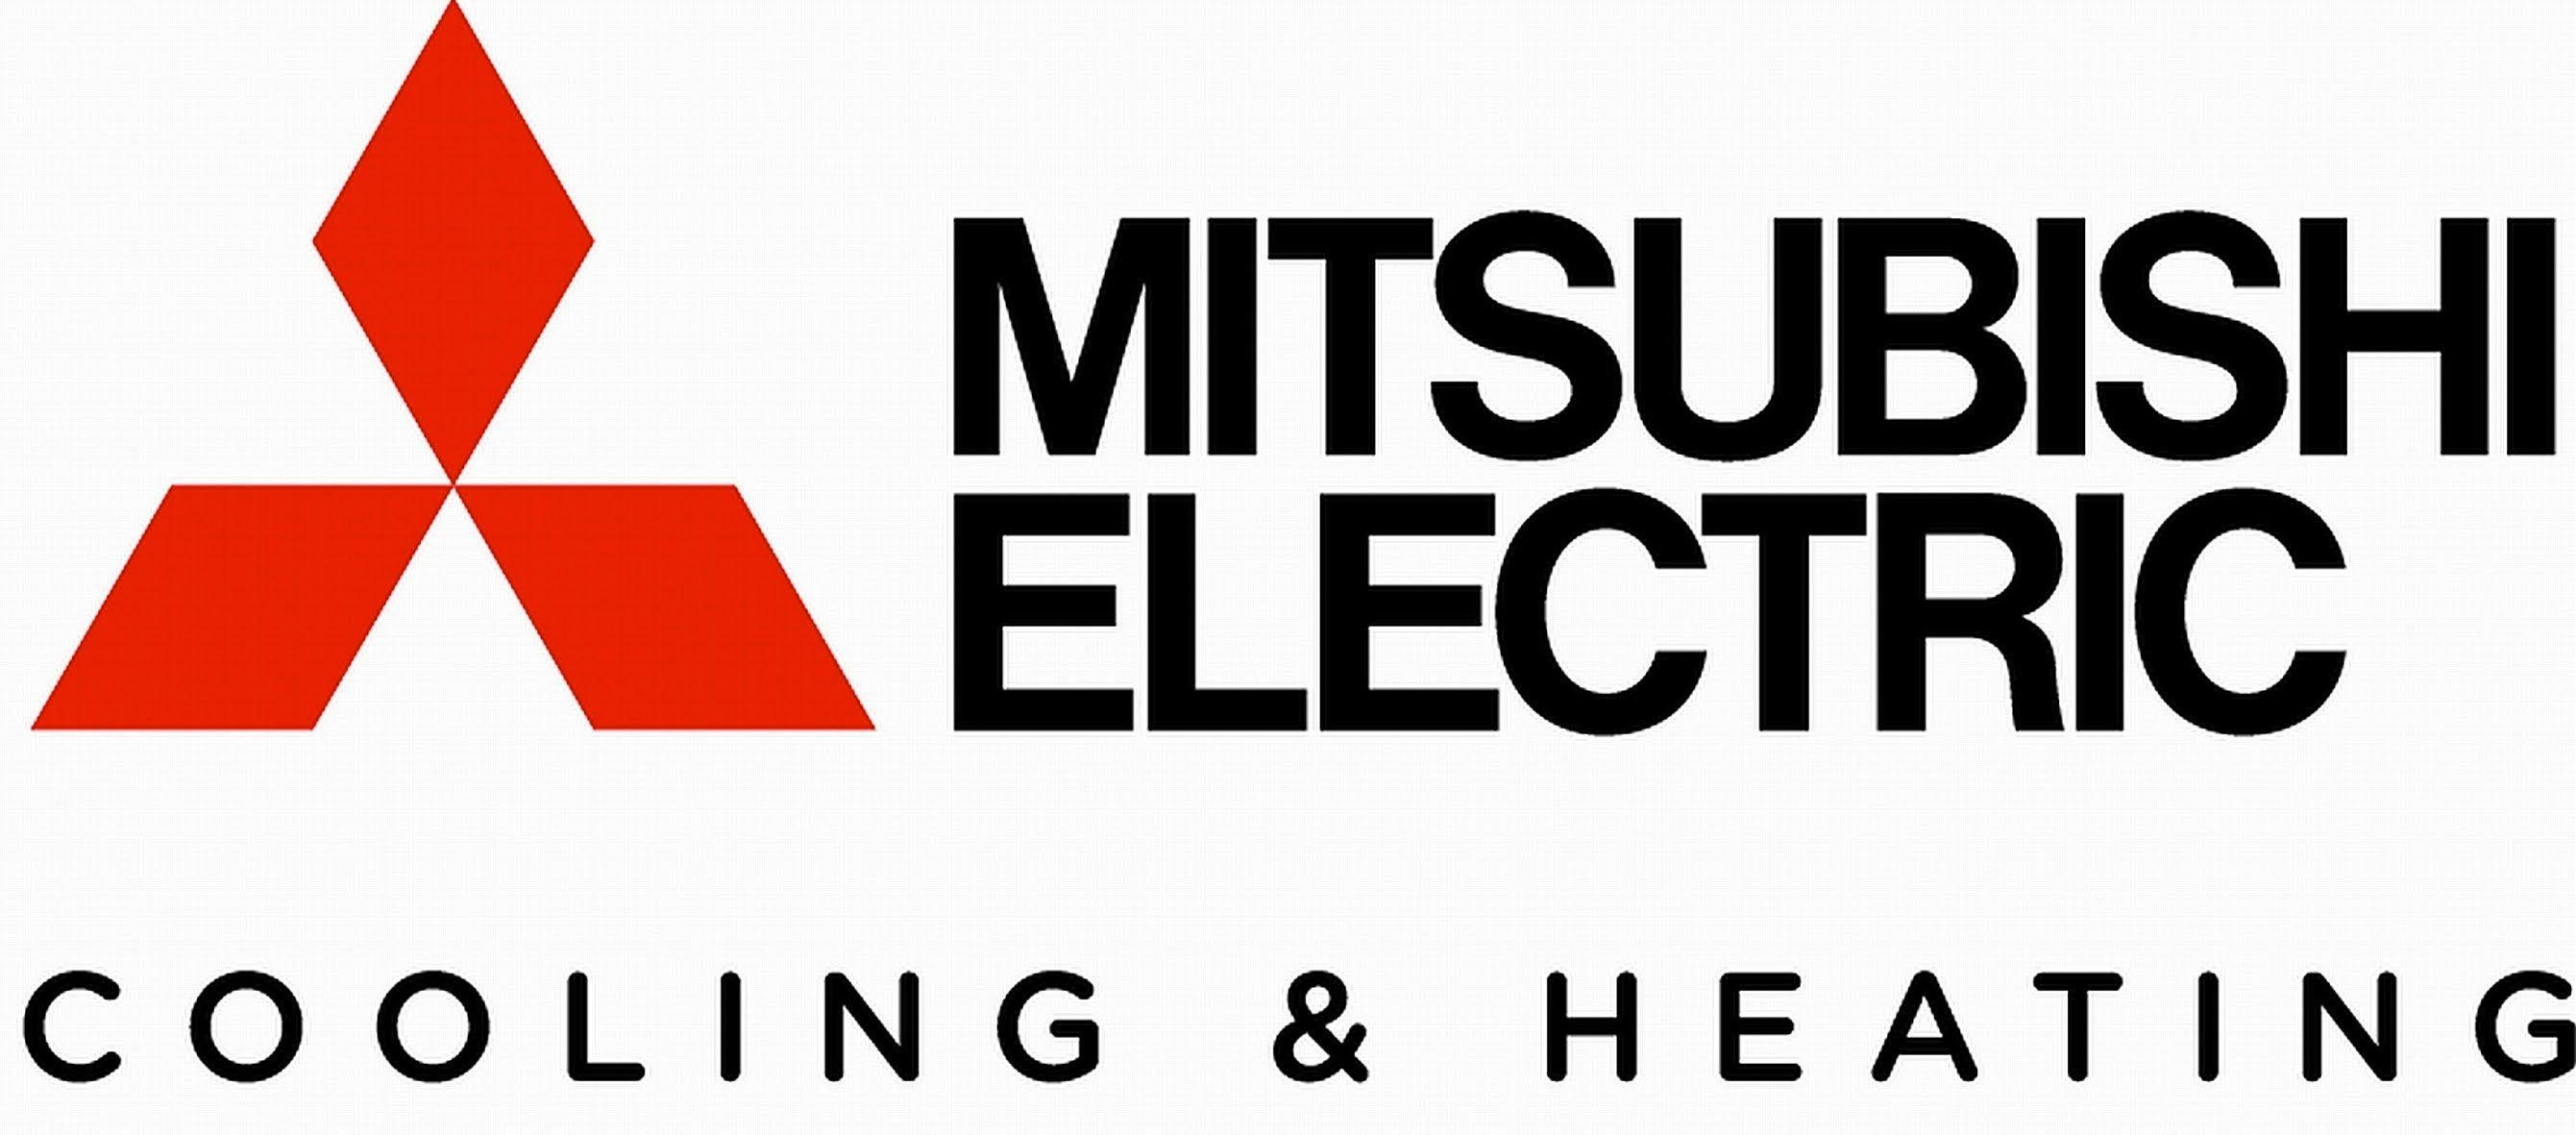 Mitsubishi Electric Cooling And Heating Reference Alternative To Window Air Conditioning Units Commercial Hvac Electric Cooling Ductless Heat Pump